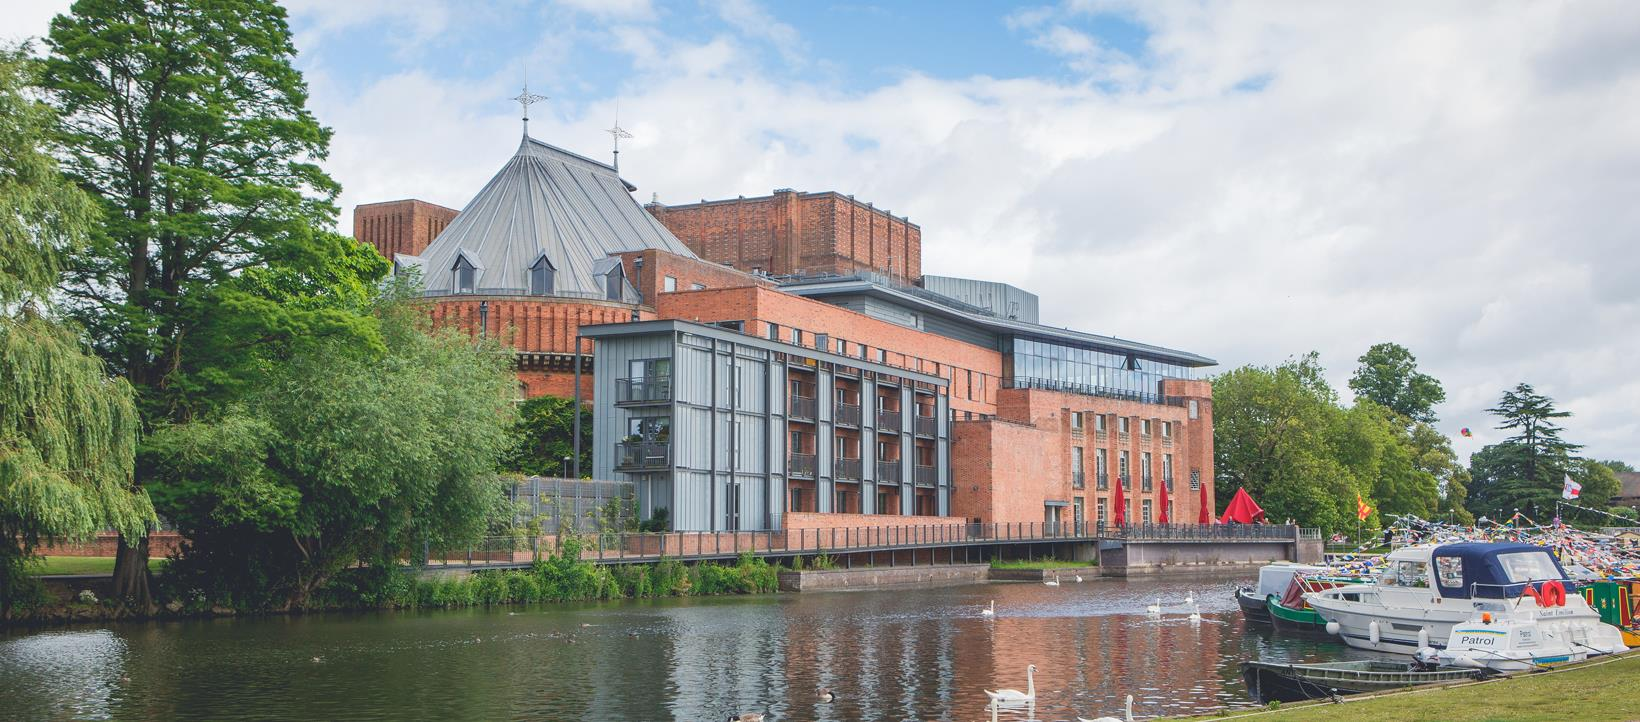 royal shakespeare company rsc outside of the rst from opposite side of the river taken from swan theatre end